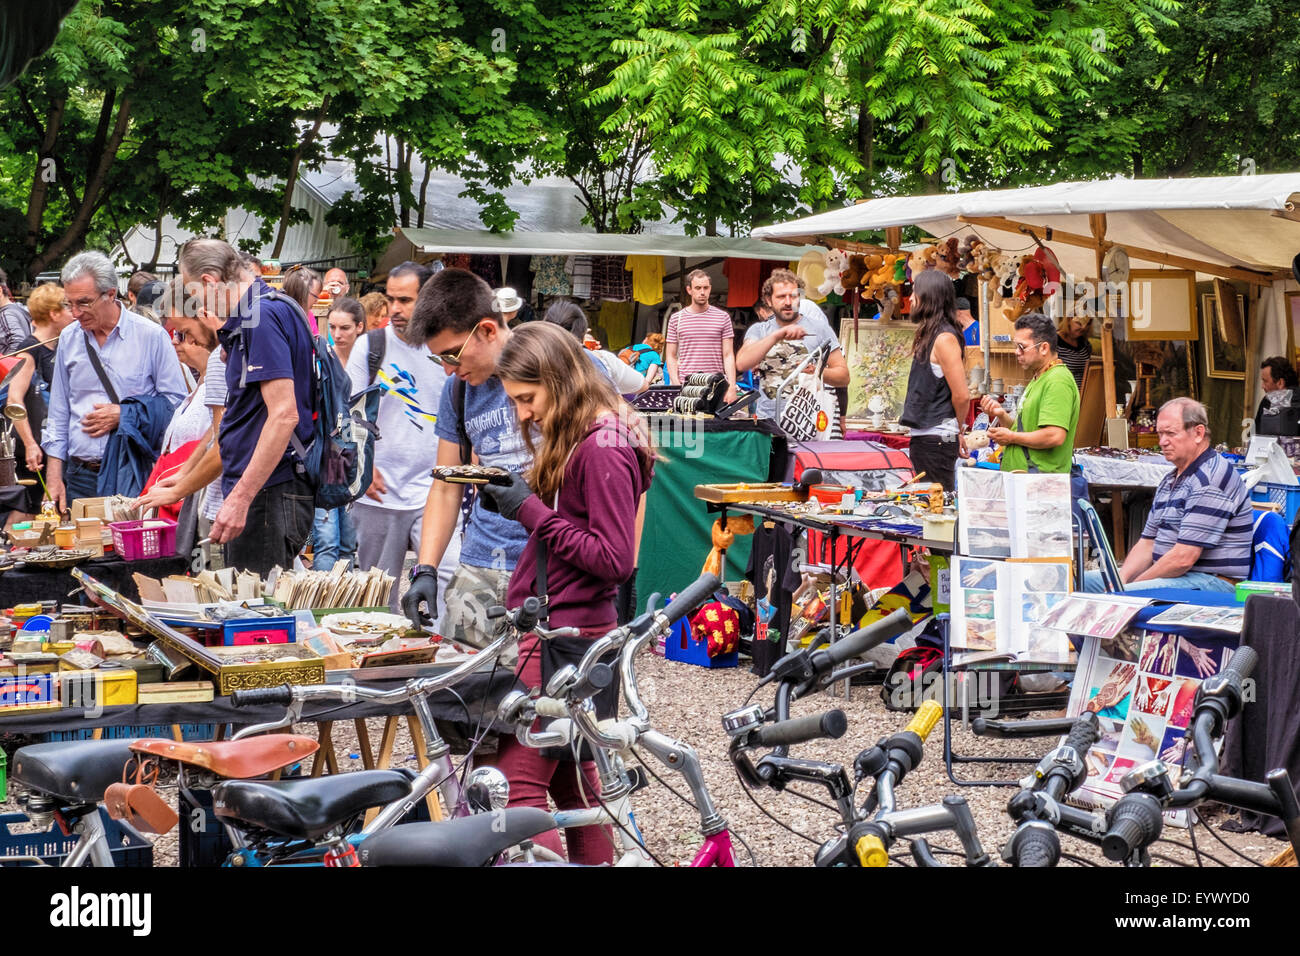 Küche Second Hand Berlin Berlin Mauer Park Flea Market Stalls Selling Second Hand